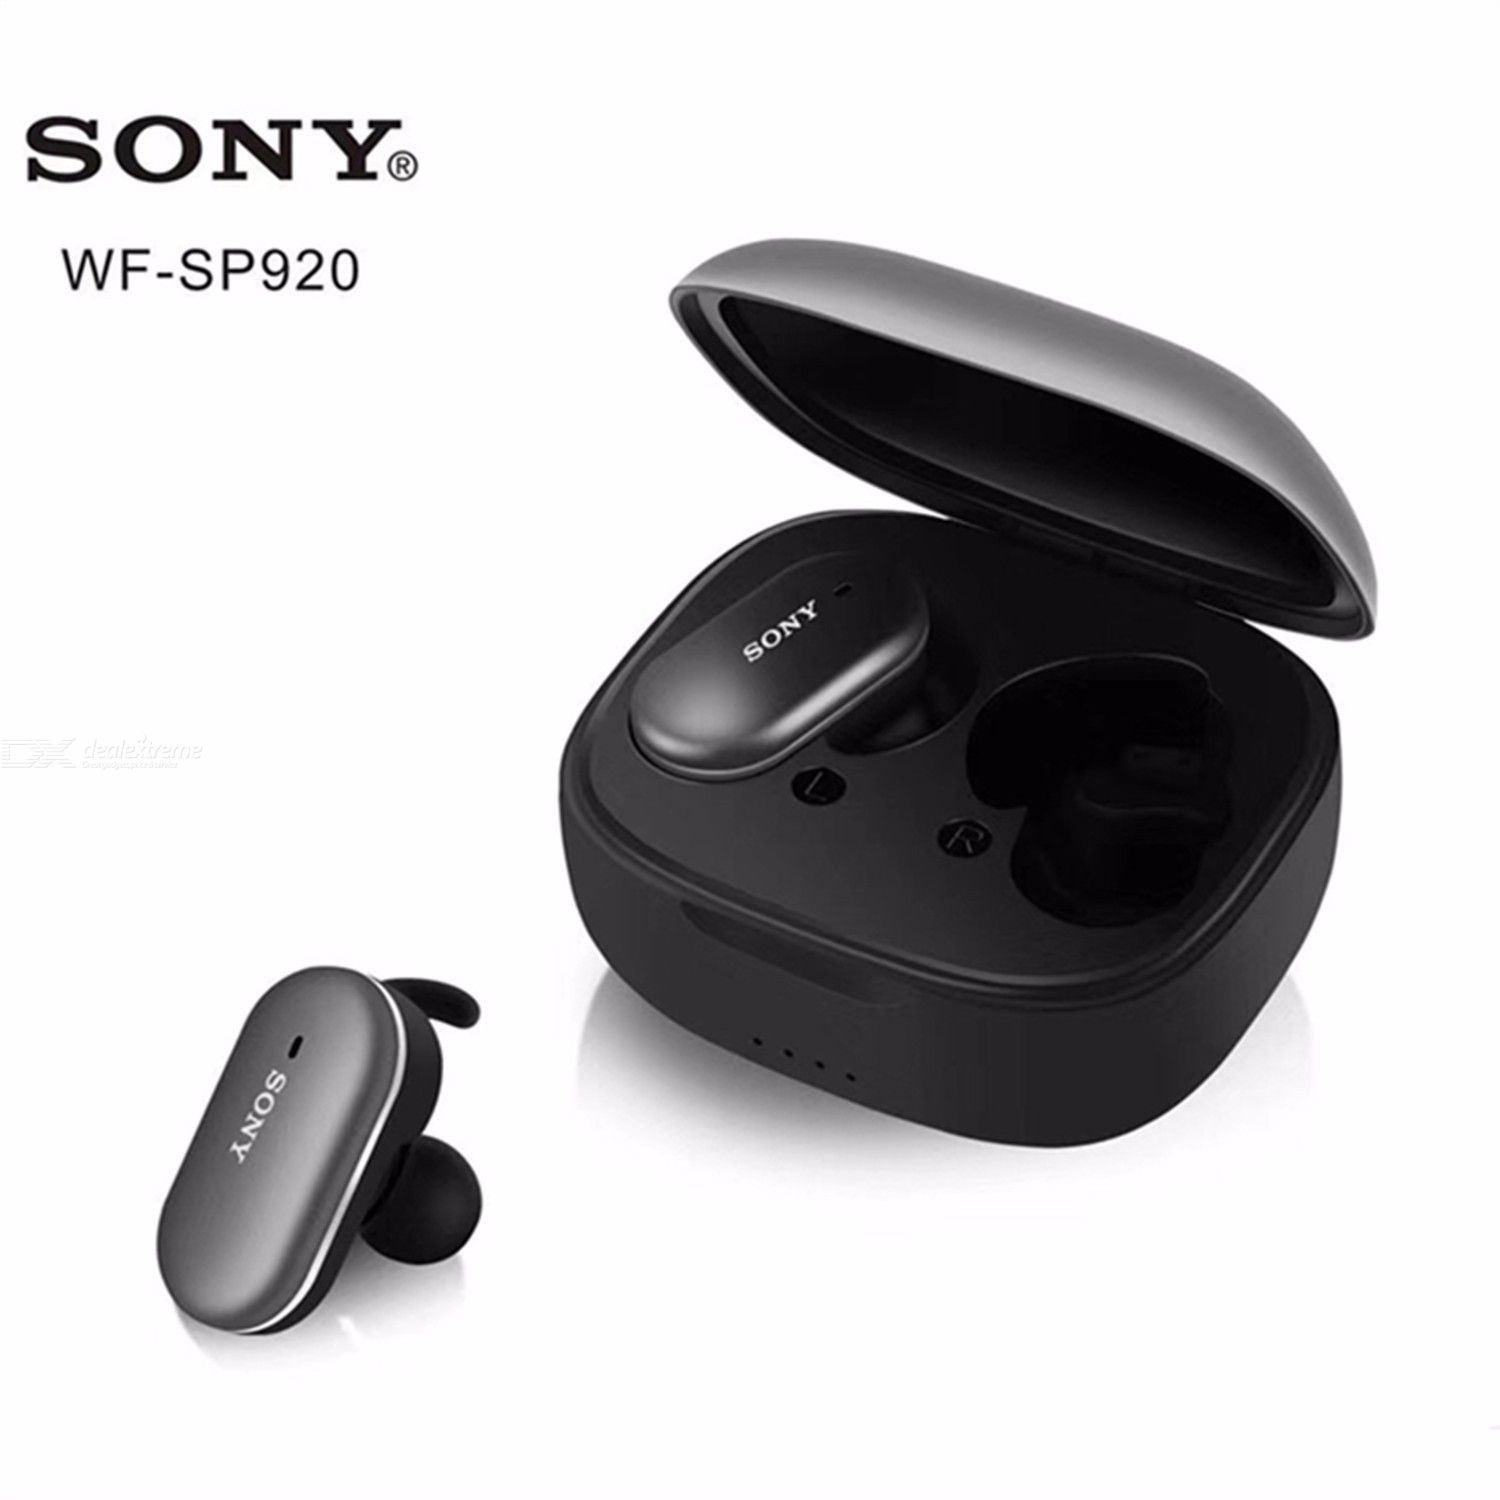 Sony Wf Sp920 True Wireless Bluetooth Noise Reduction Headset Earphone With Charging Box Free Shipping Dealextreme